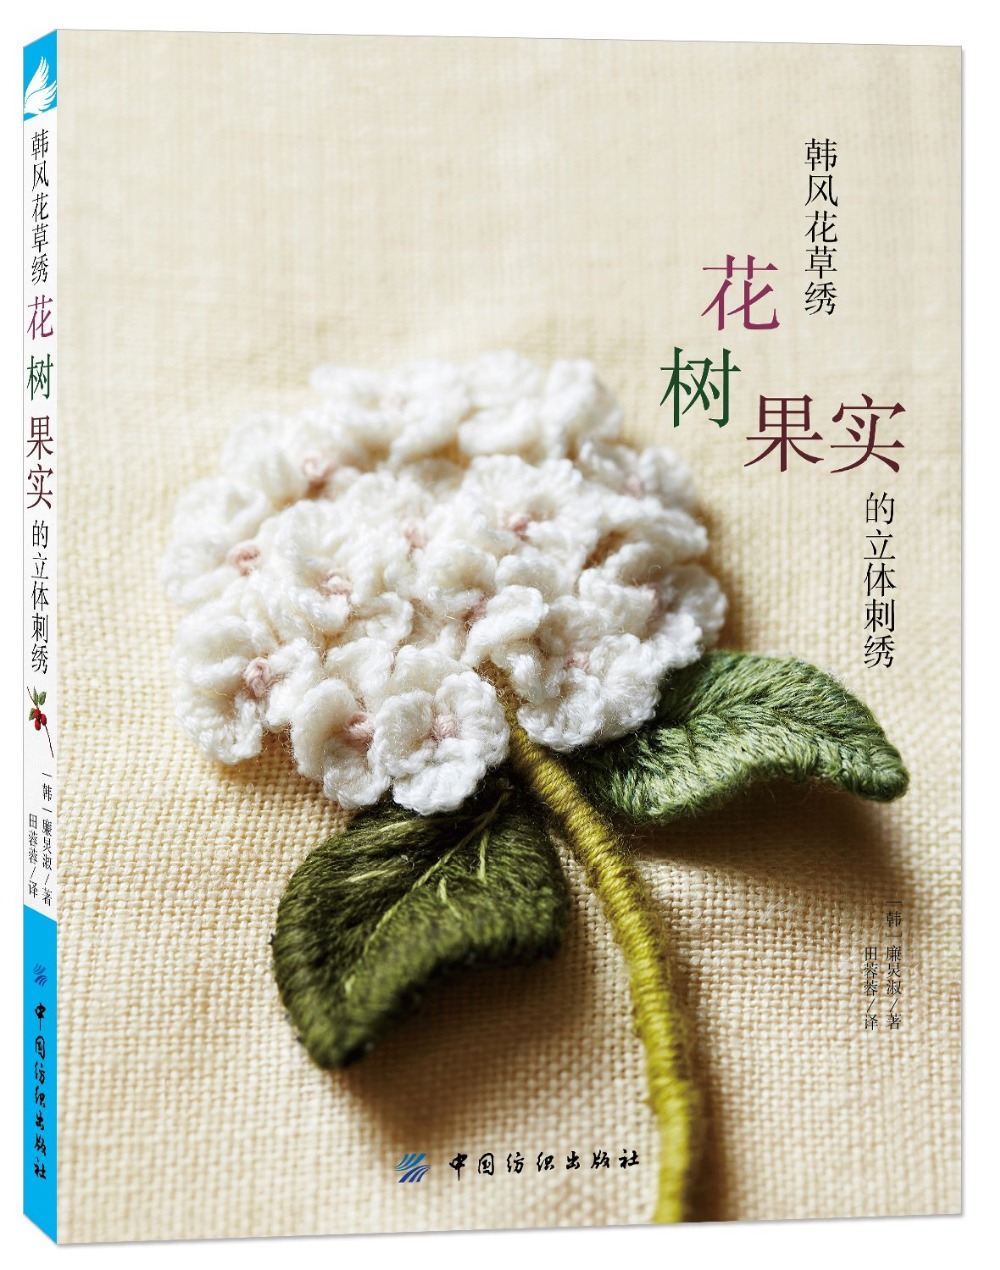 A three-dimensional embroidery of flowers, trees, and fruits / Chinese embroidery Handmade Art Design Book hypnosi женские кроссовки на высокой подошве